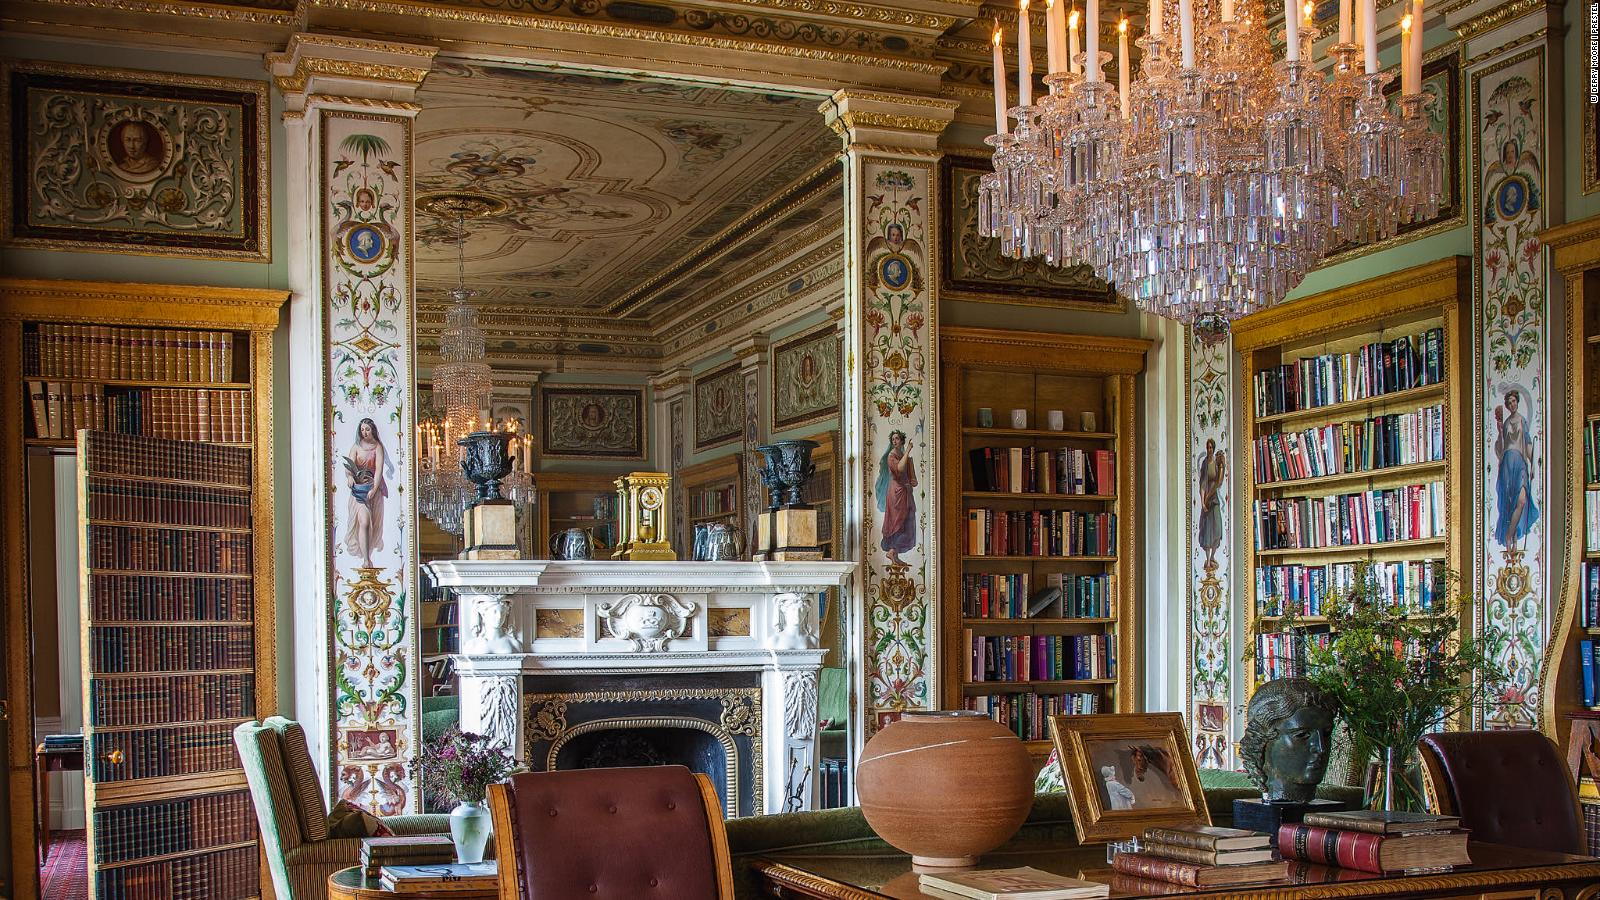 Inside history's most ont English houses - CNN Style on post wwii homes, 17th century homes, ming dynasty homes, sixteenth century homes, 14th century homes, 11th century homes, middle ages homes, 12th century homes, 19th century homes, 18th century homes, 1850's homes, 10th century homes, nineteenth century homes, first century homes, 2nd century homes, seventies homes, 5th century homes, europe homes, 16 century homes, 21th century homes,